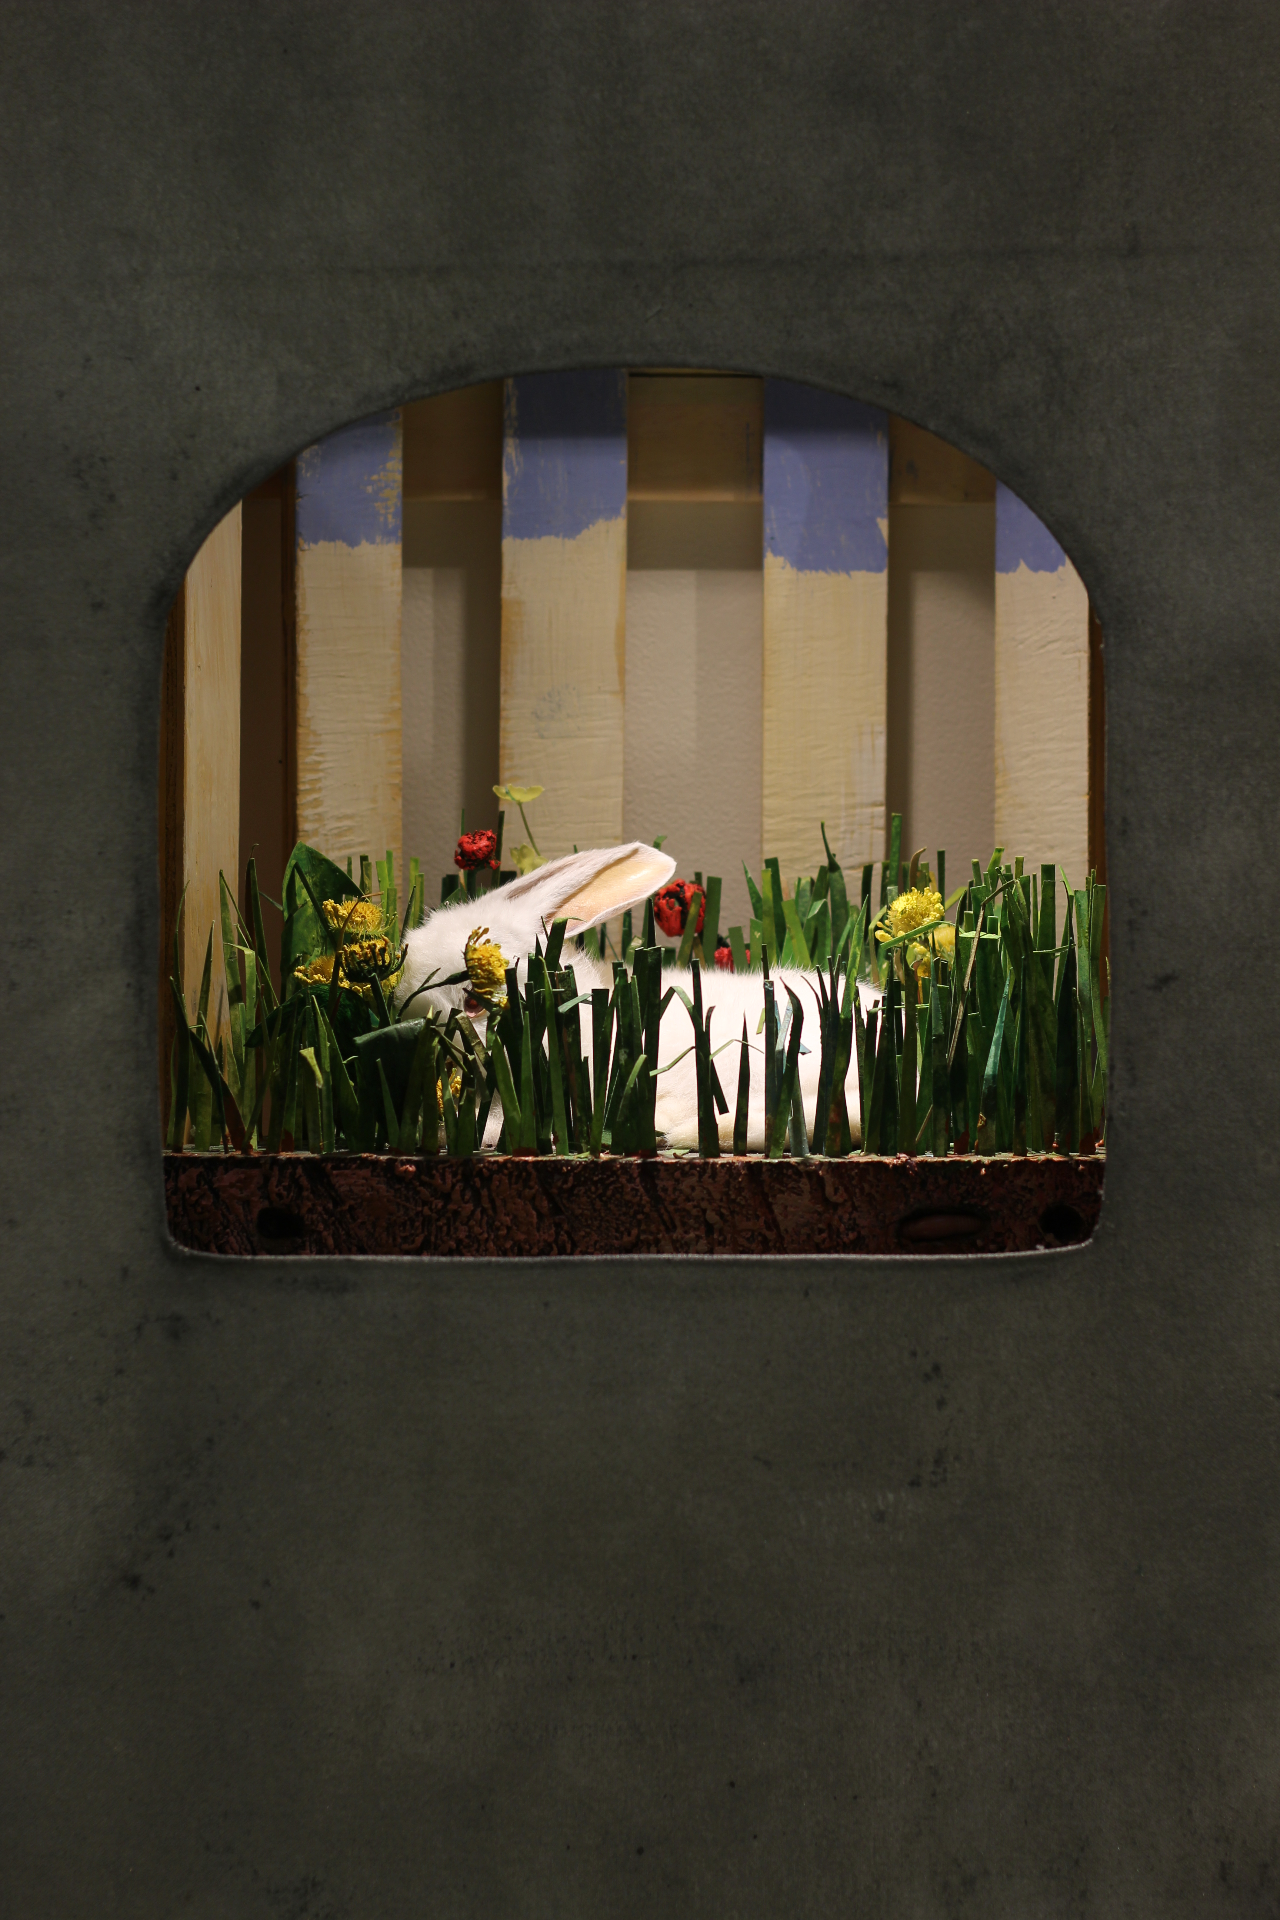 Rabbit and Meadow Diorama, 2015